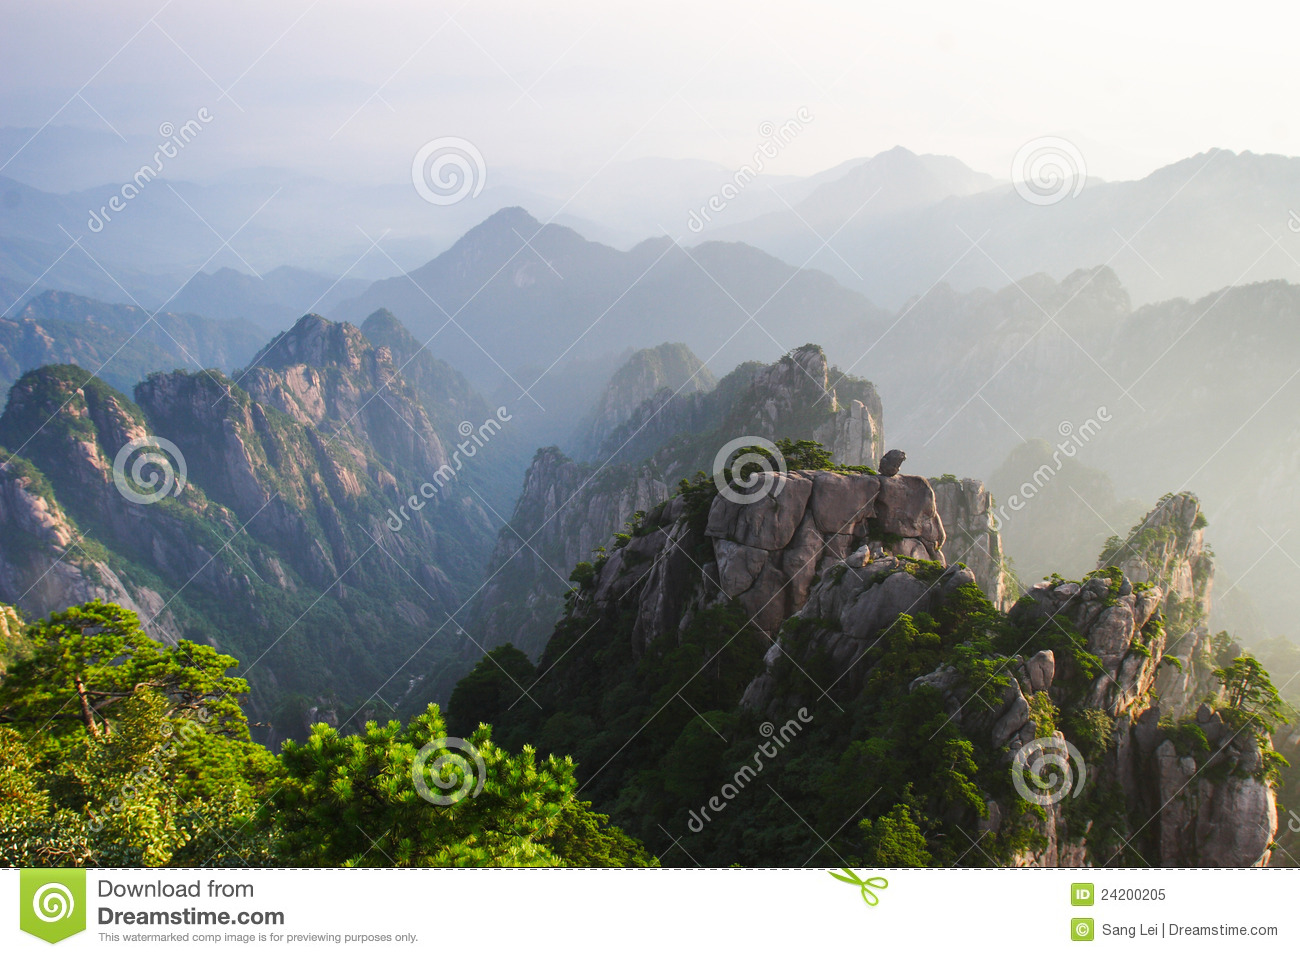 Mountains Huangshan Royalty Free Stock Photo - Image: 24200205